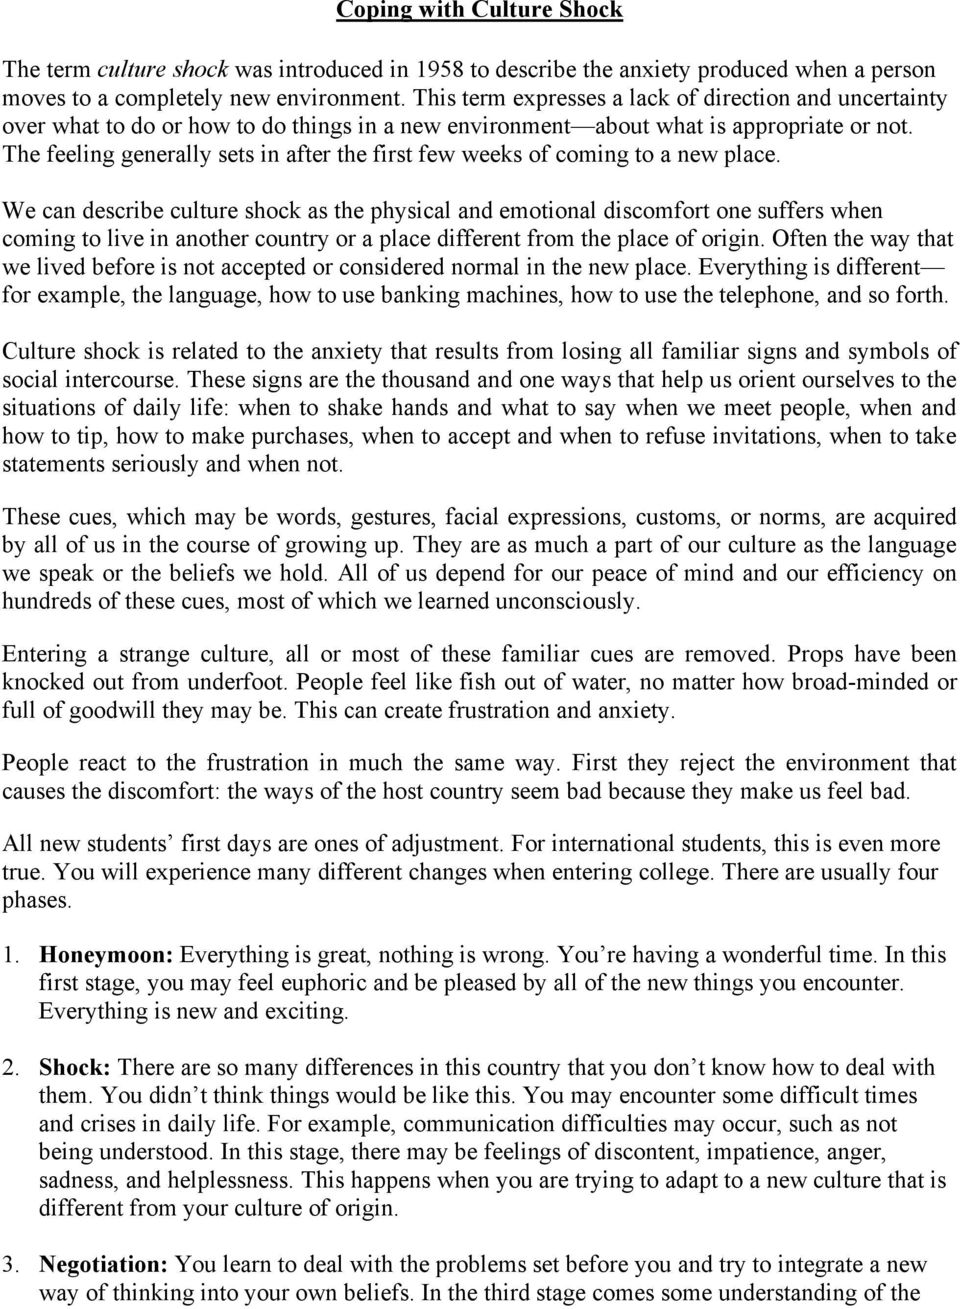 Coping with Culture Shock - PDF